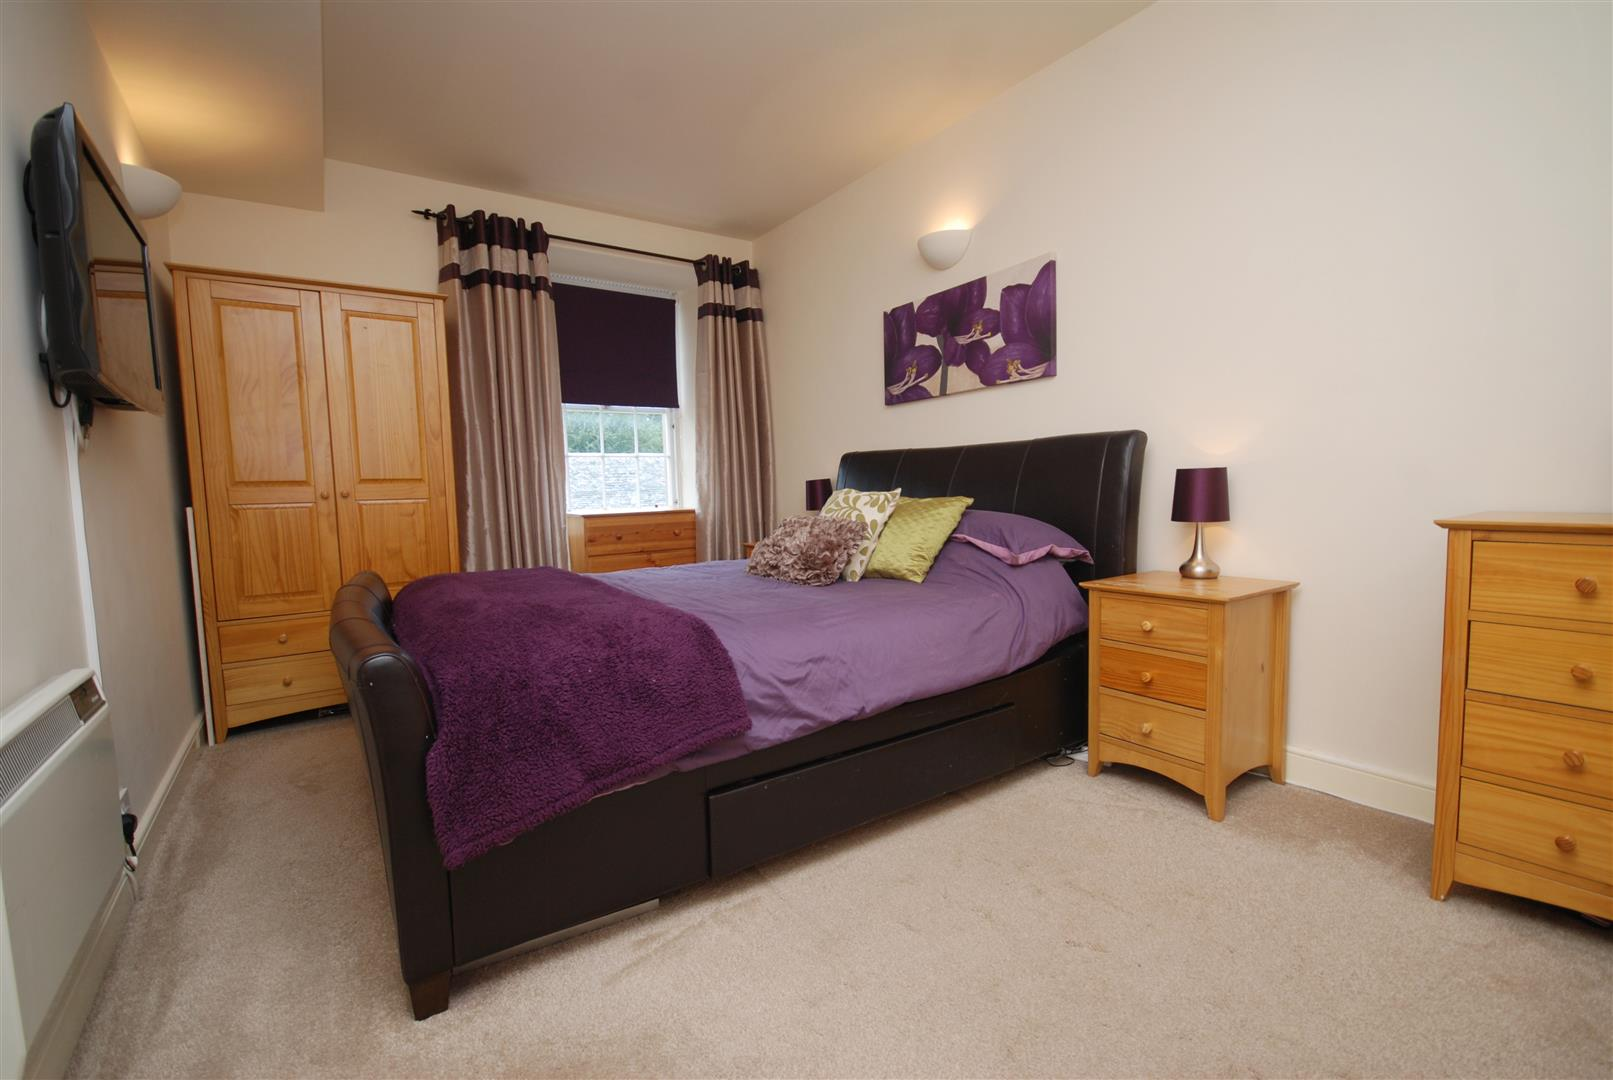 Flat 3A East Mill, Stanley Mills, Stanley, Perthshire, PH1 4RB, UK